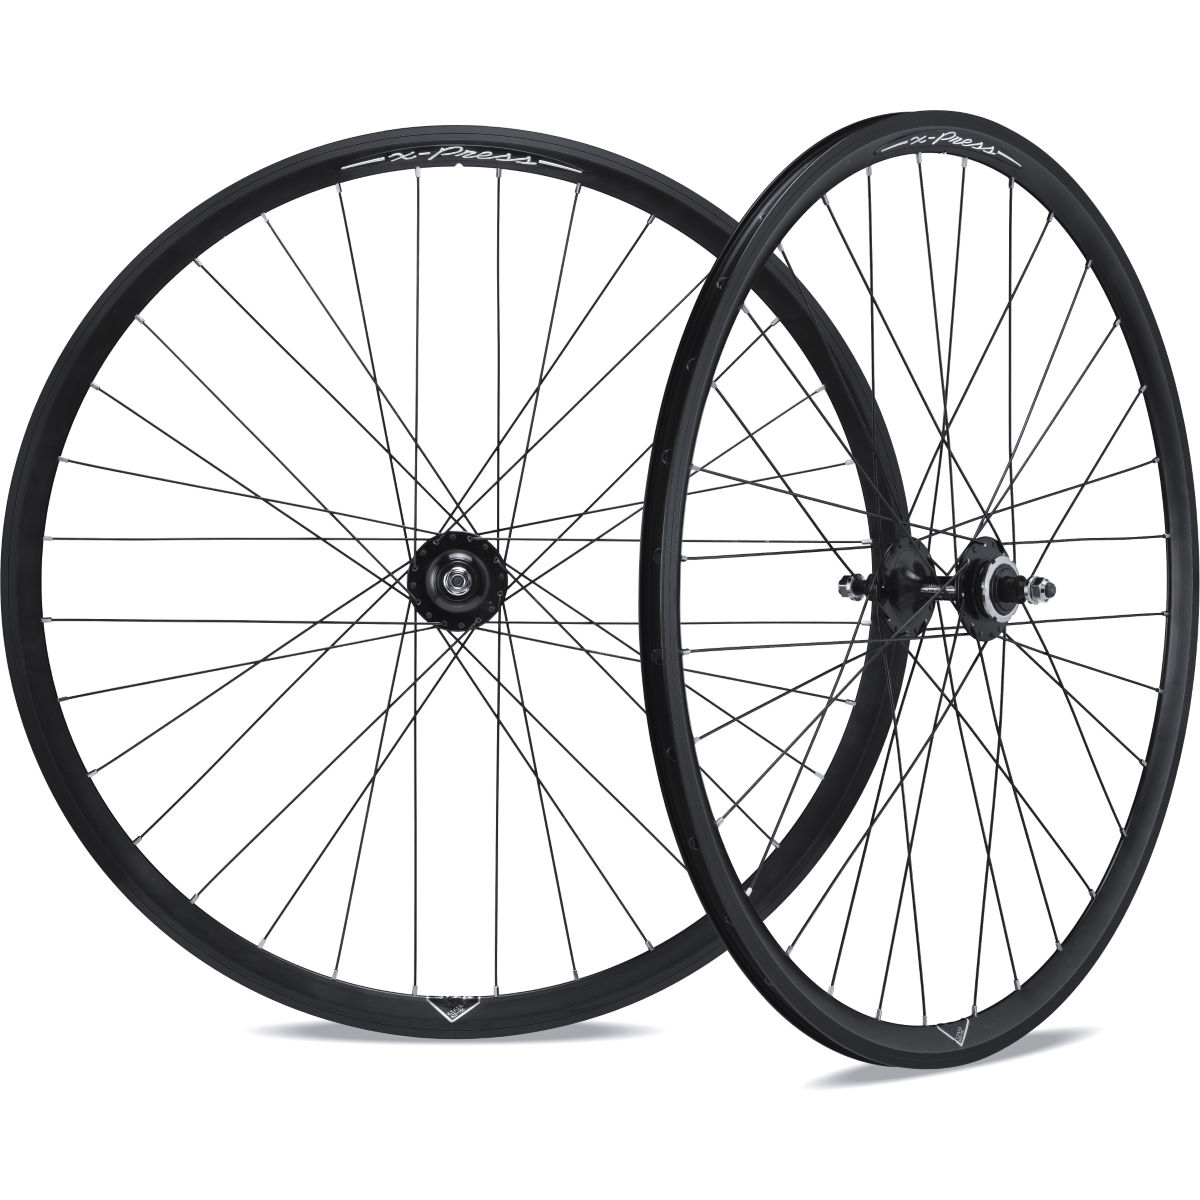 Miche X-Press Road/Track Bike Wheels   Performance Wheels